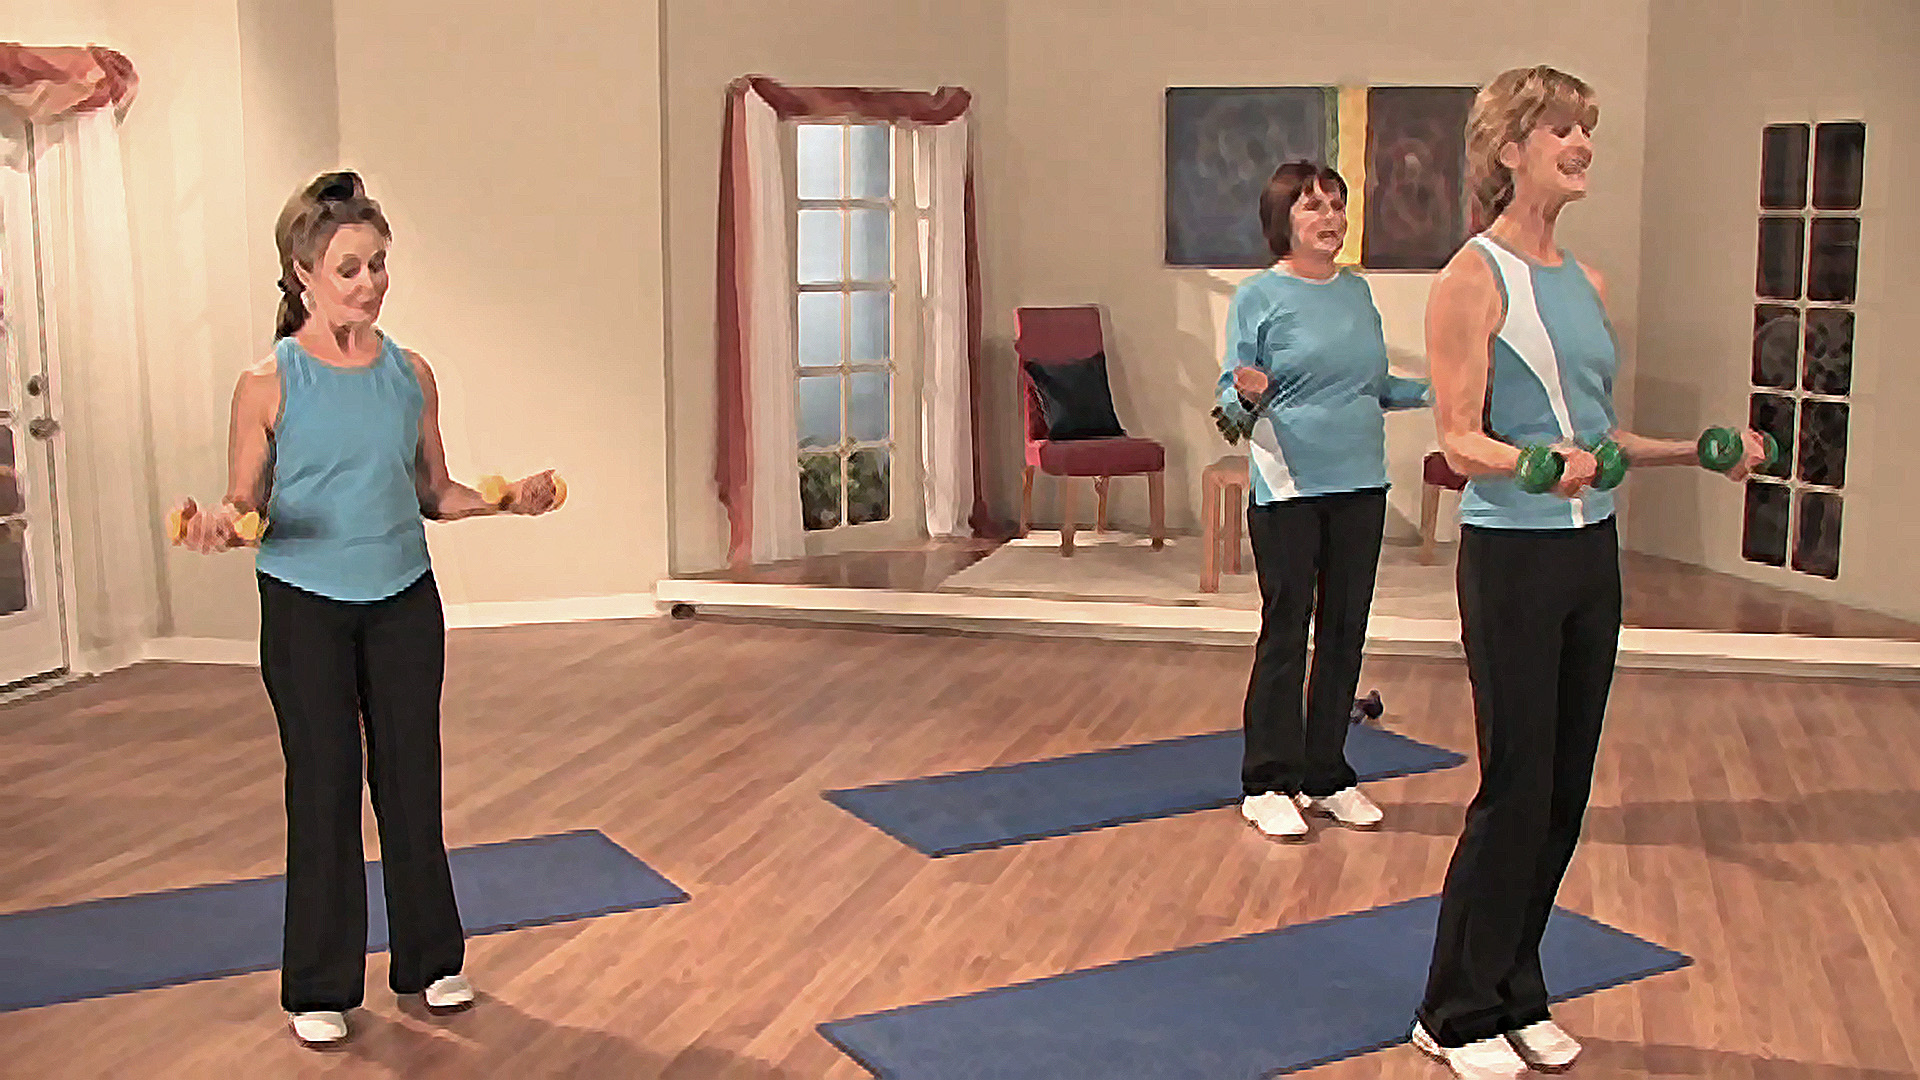 Watch Fit At Any Age Workout For Active Older Adults Seniors Prime Video